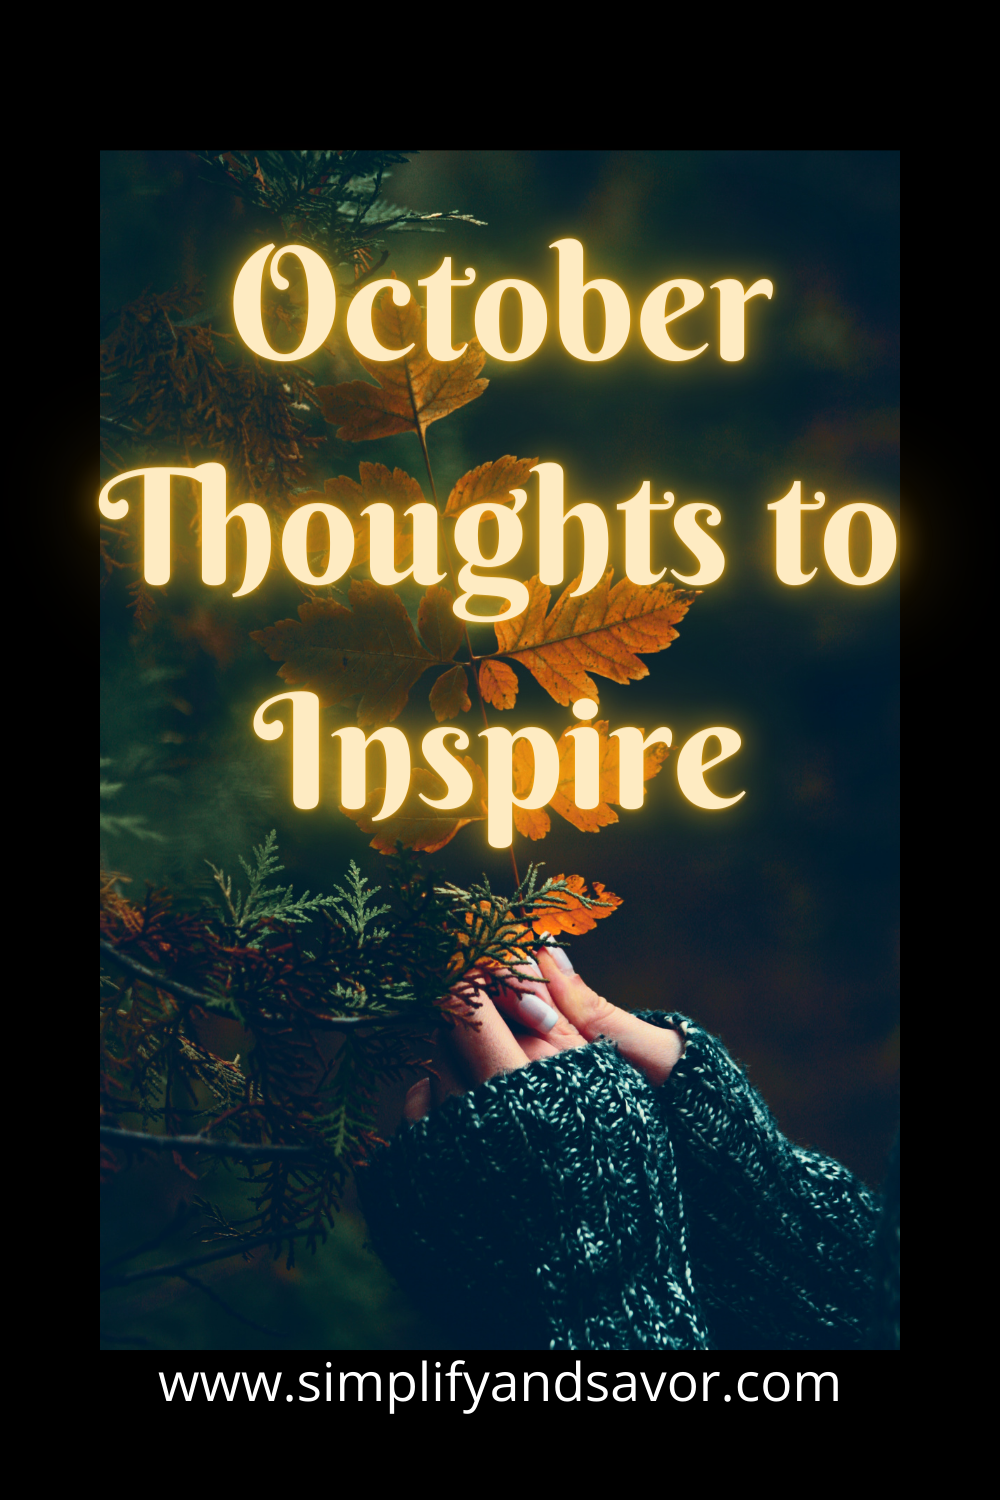 October thoughts to inspire. #WordsofEncouragement #Inspiration #InspirationalQuotes